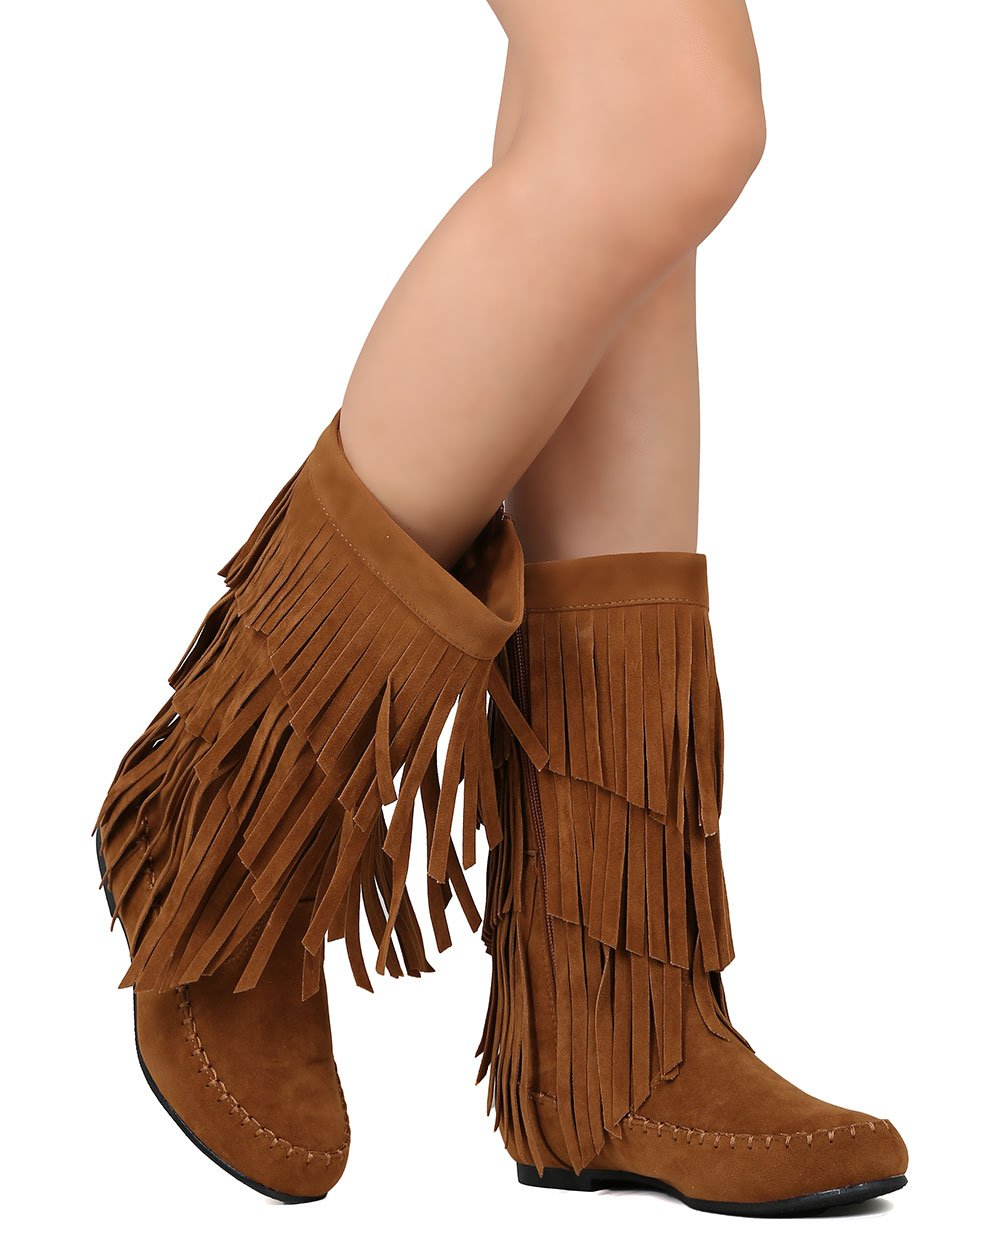 Refresh Women Faux Suede Mid Calf Cascading Fringe Moccasin Boot FI10 - Tan (Size: 8.0)